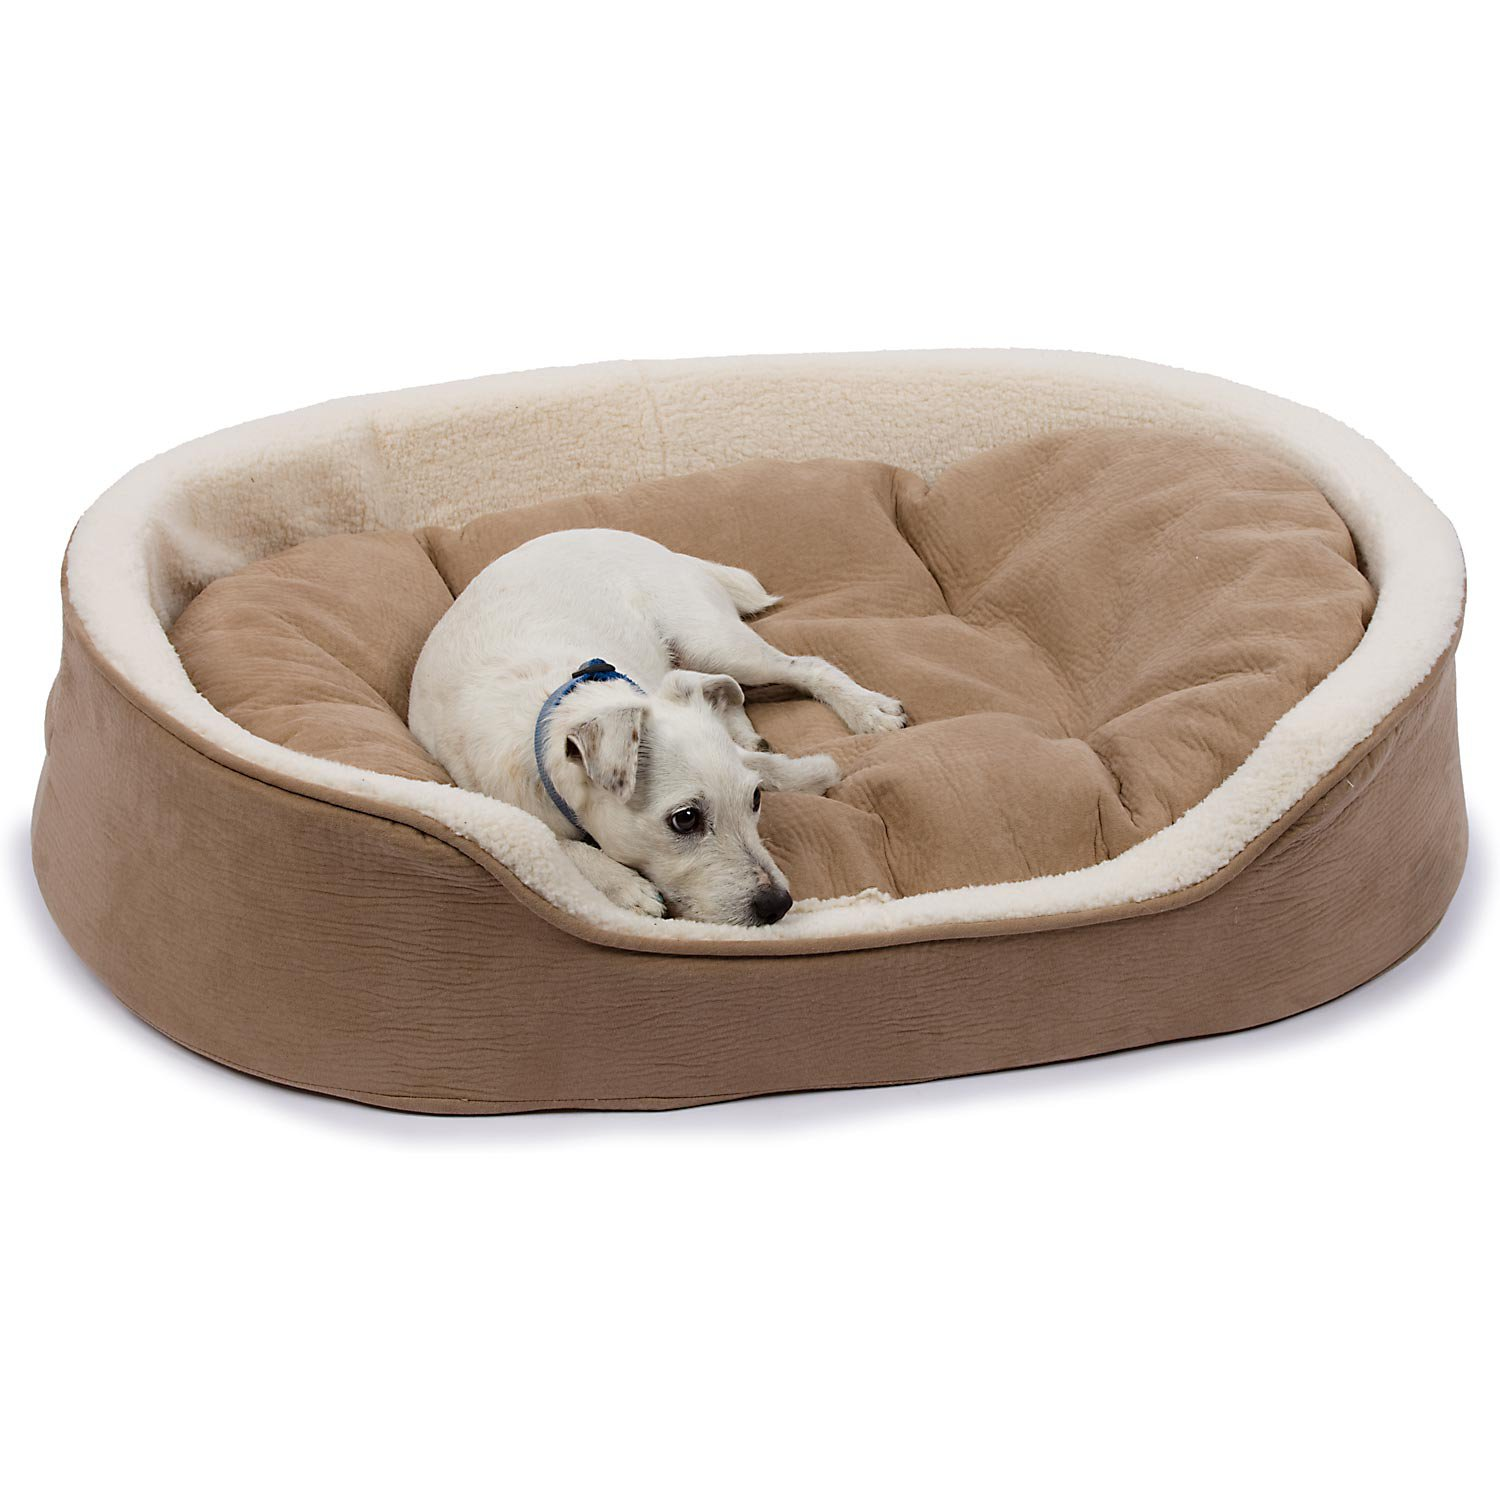 petco dog beds awesome 8 best cat beds images on pinterest design